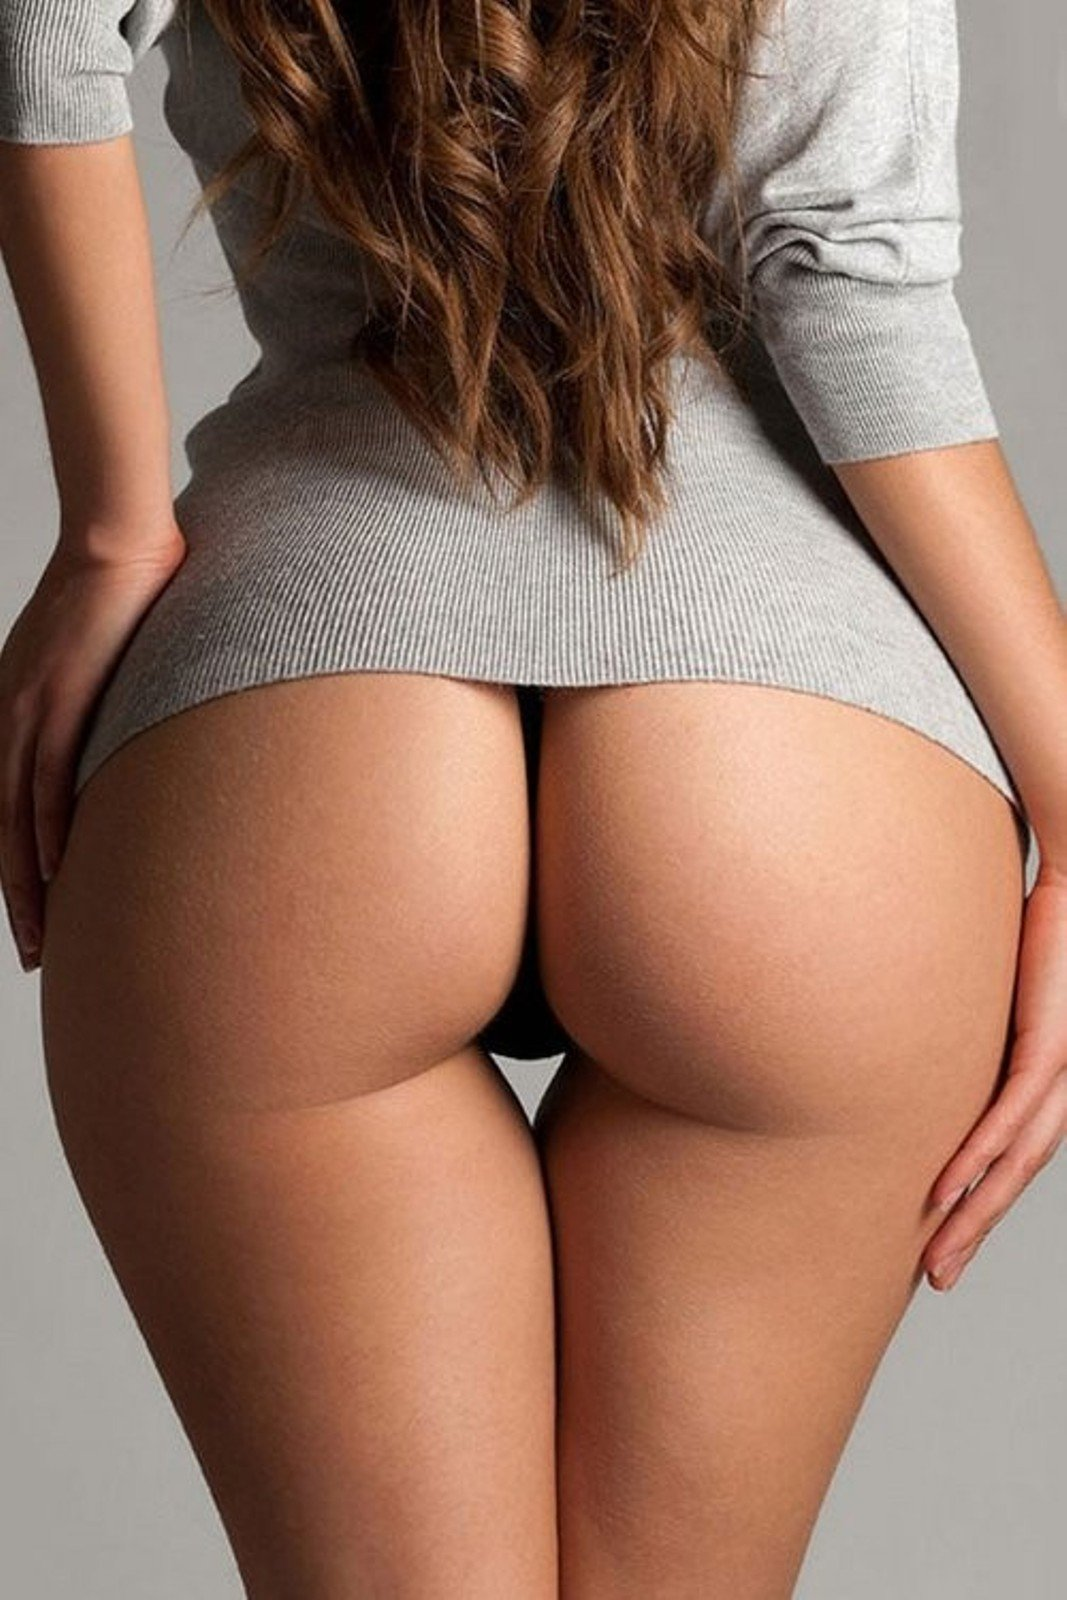 girls-with-hot-butts